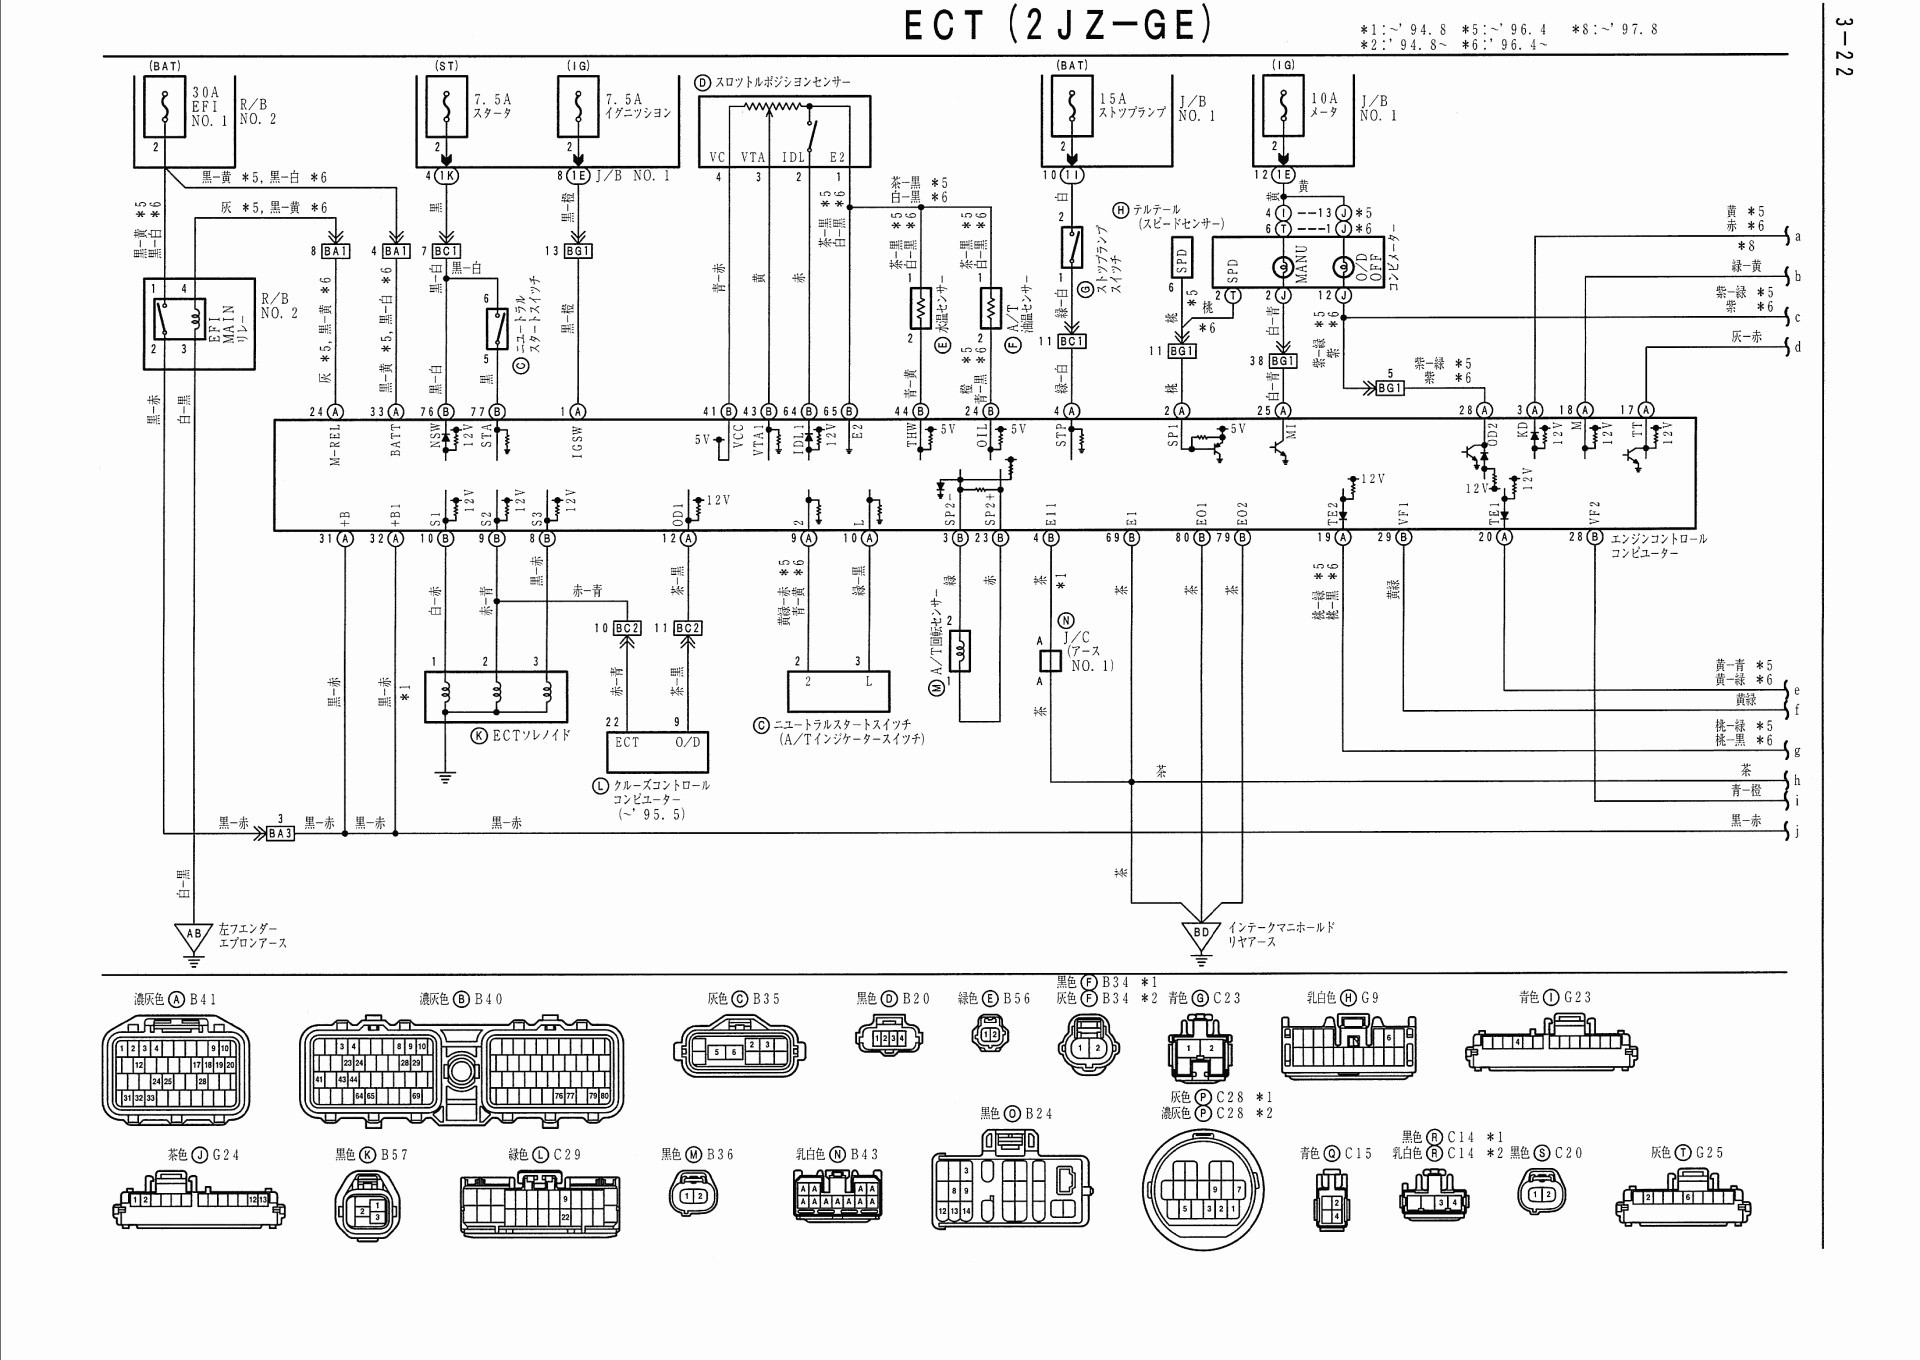 DIAGRAM] Bmw Z3 Radio Wiring Diagram FULL Version HD Quality Wiring Diagram  - WIRING29.CASTILLONDECASTETS.FRWiring And Fuse Image